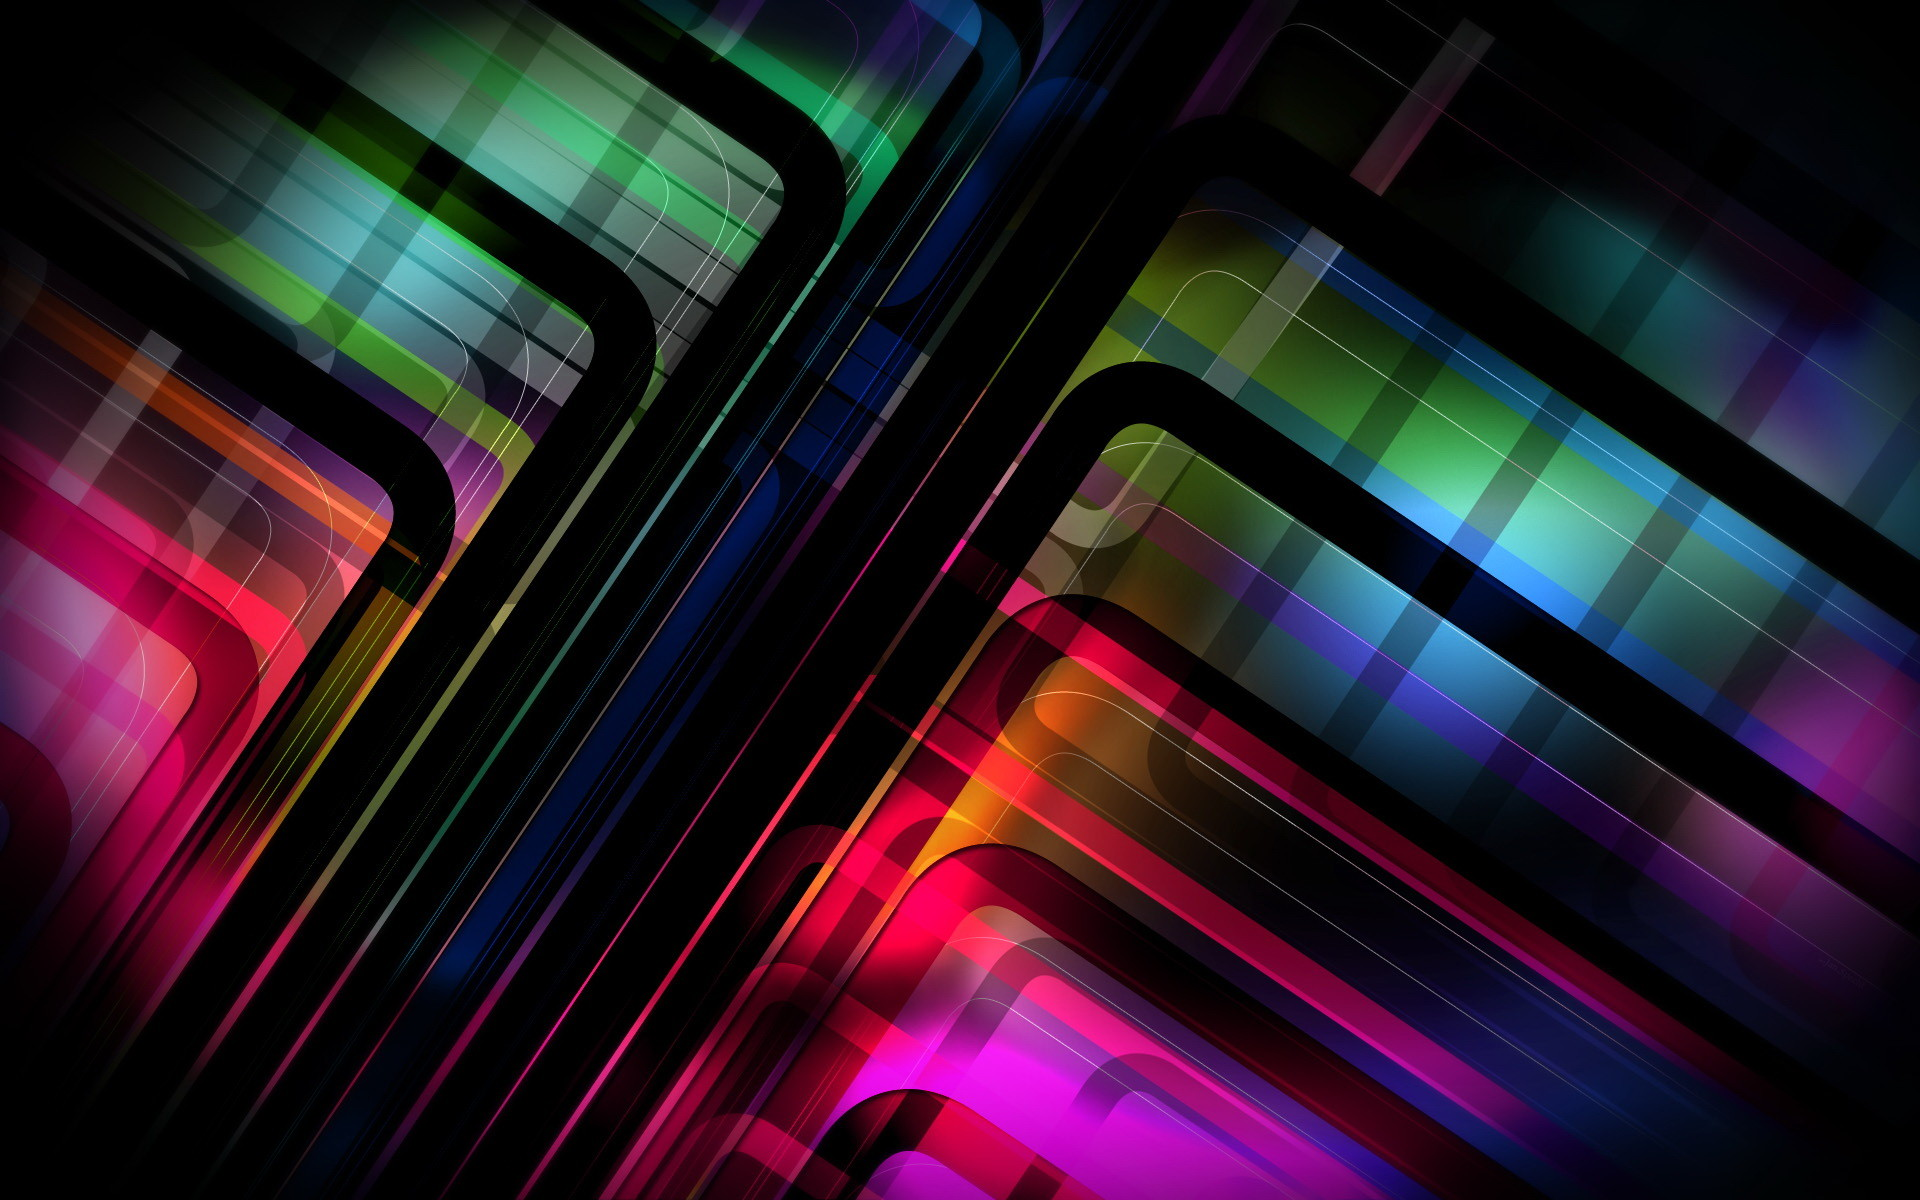 Free Colourful Old Abstract Wallpapers, Colourful Old Abstract Pictures,  Colourful Old Abstract Photos, Colourful Old Abstract wallpaper